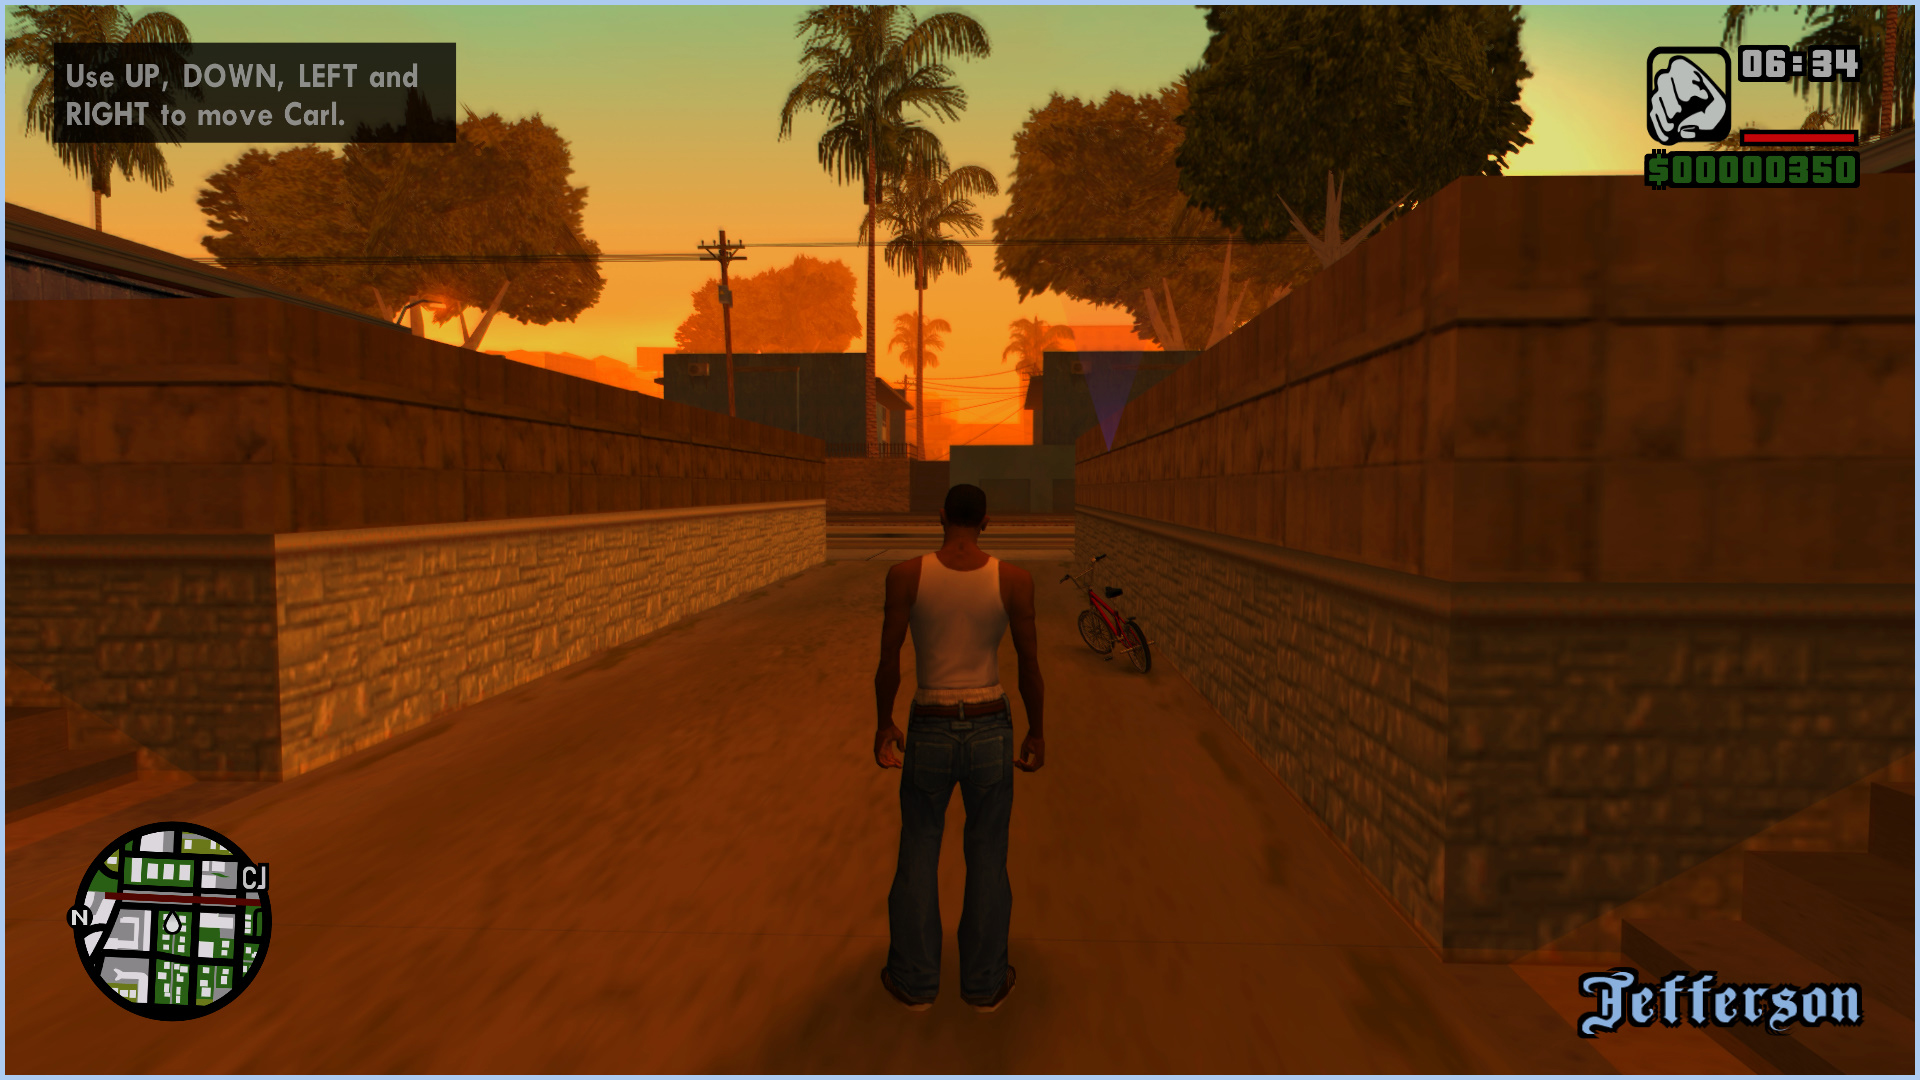 Download grand theft auto: san andreas for pc in 500 mb [compressed].